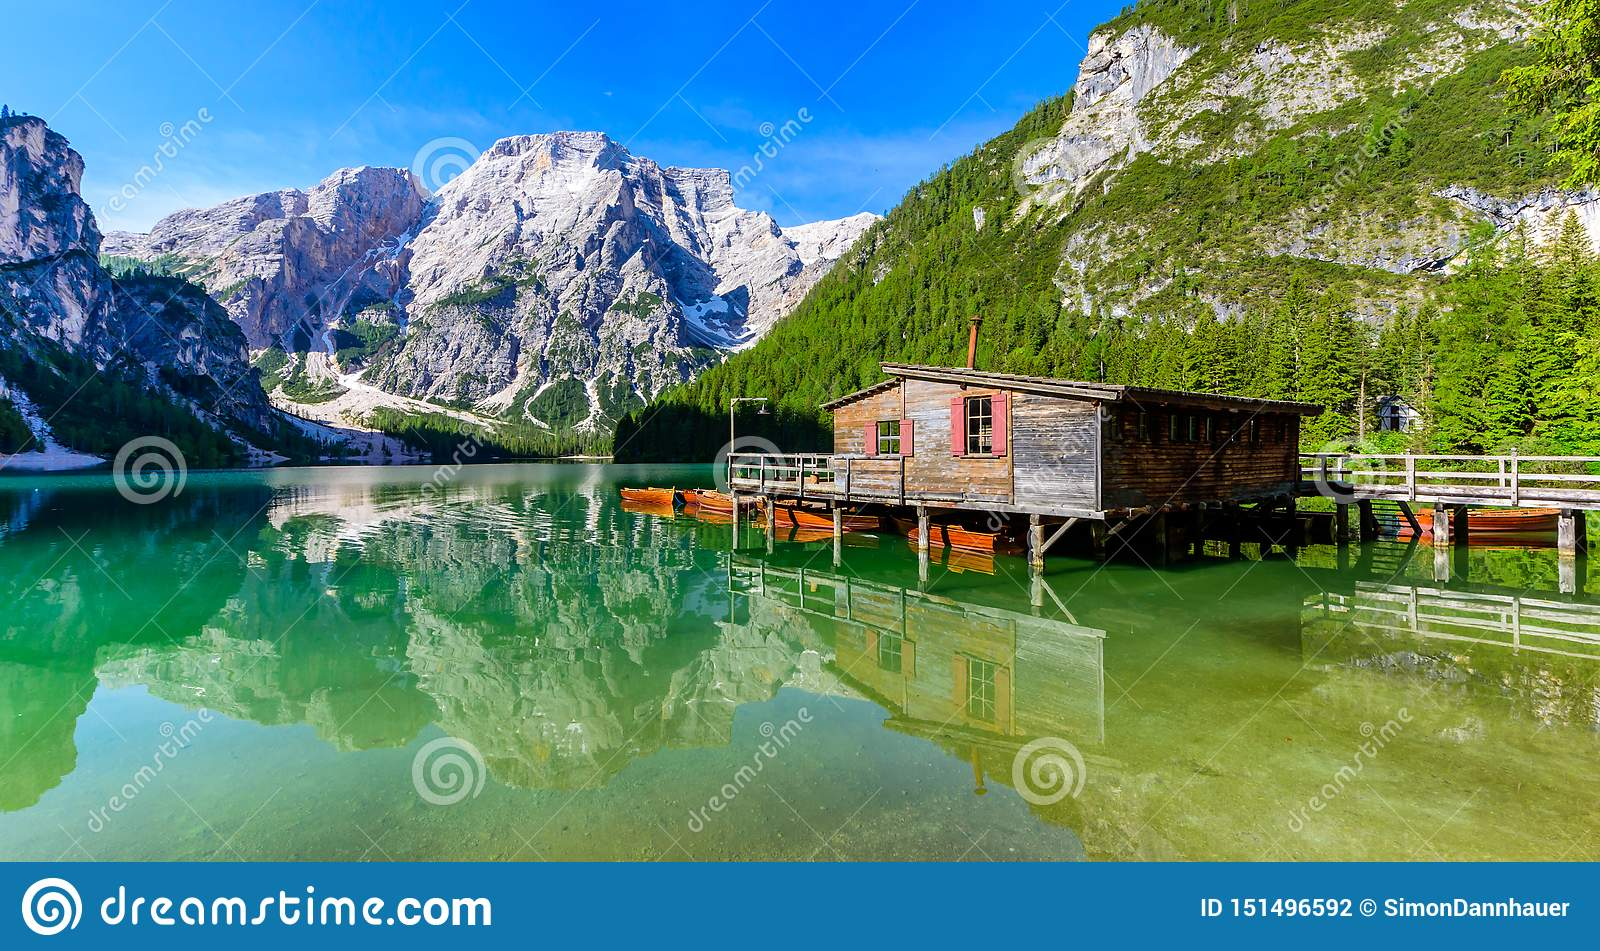 Lake Braies also known as Pragser Wildsee  in beautiful mountain landscape. Relaxing and recreation at Lago di Braies in Dolomites